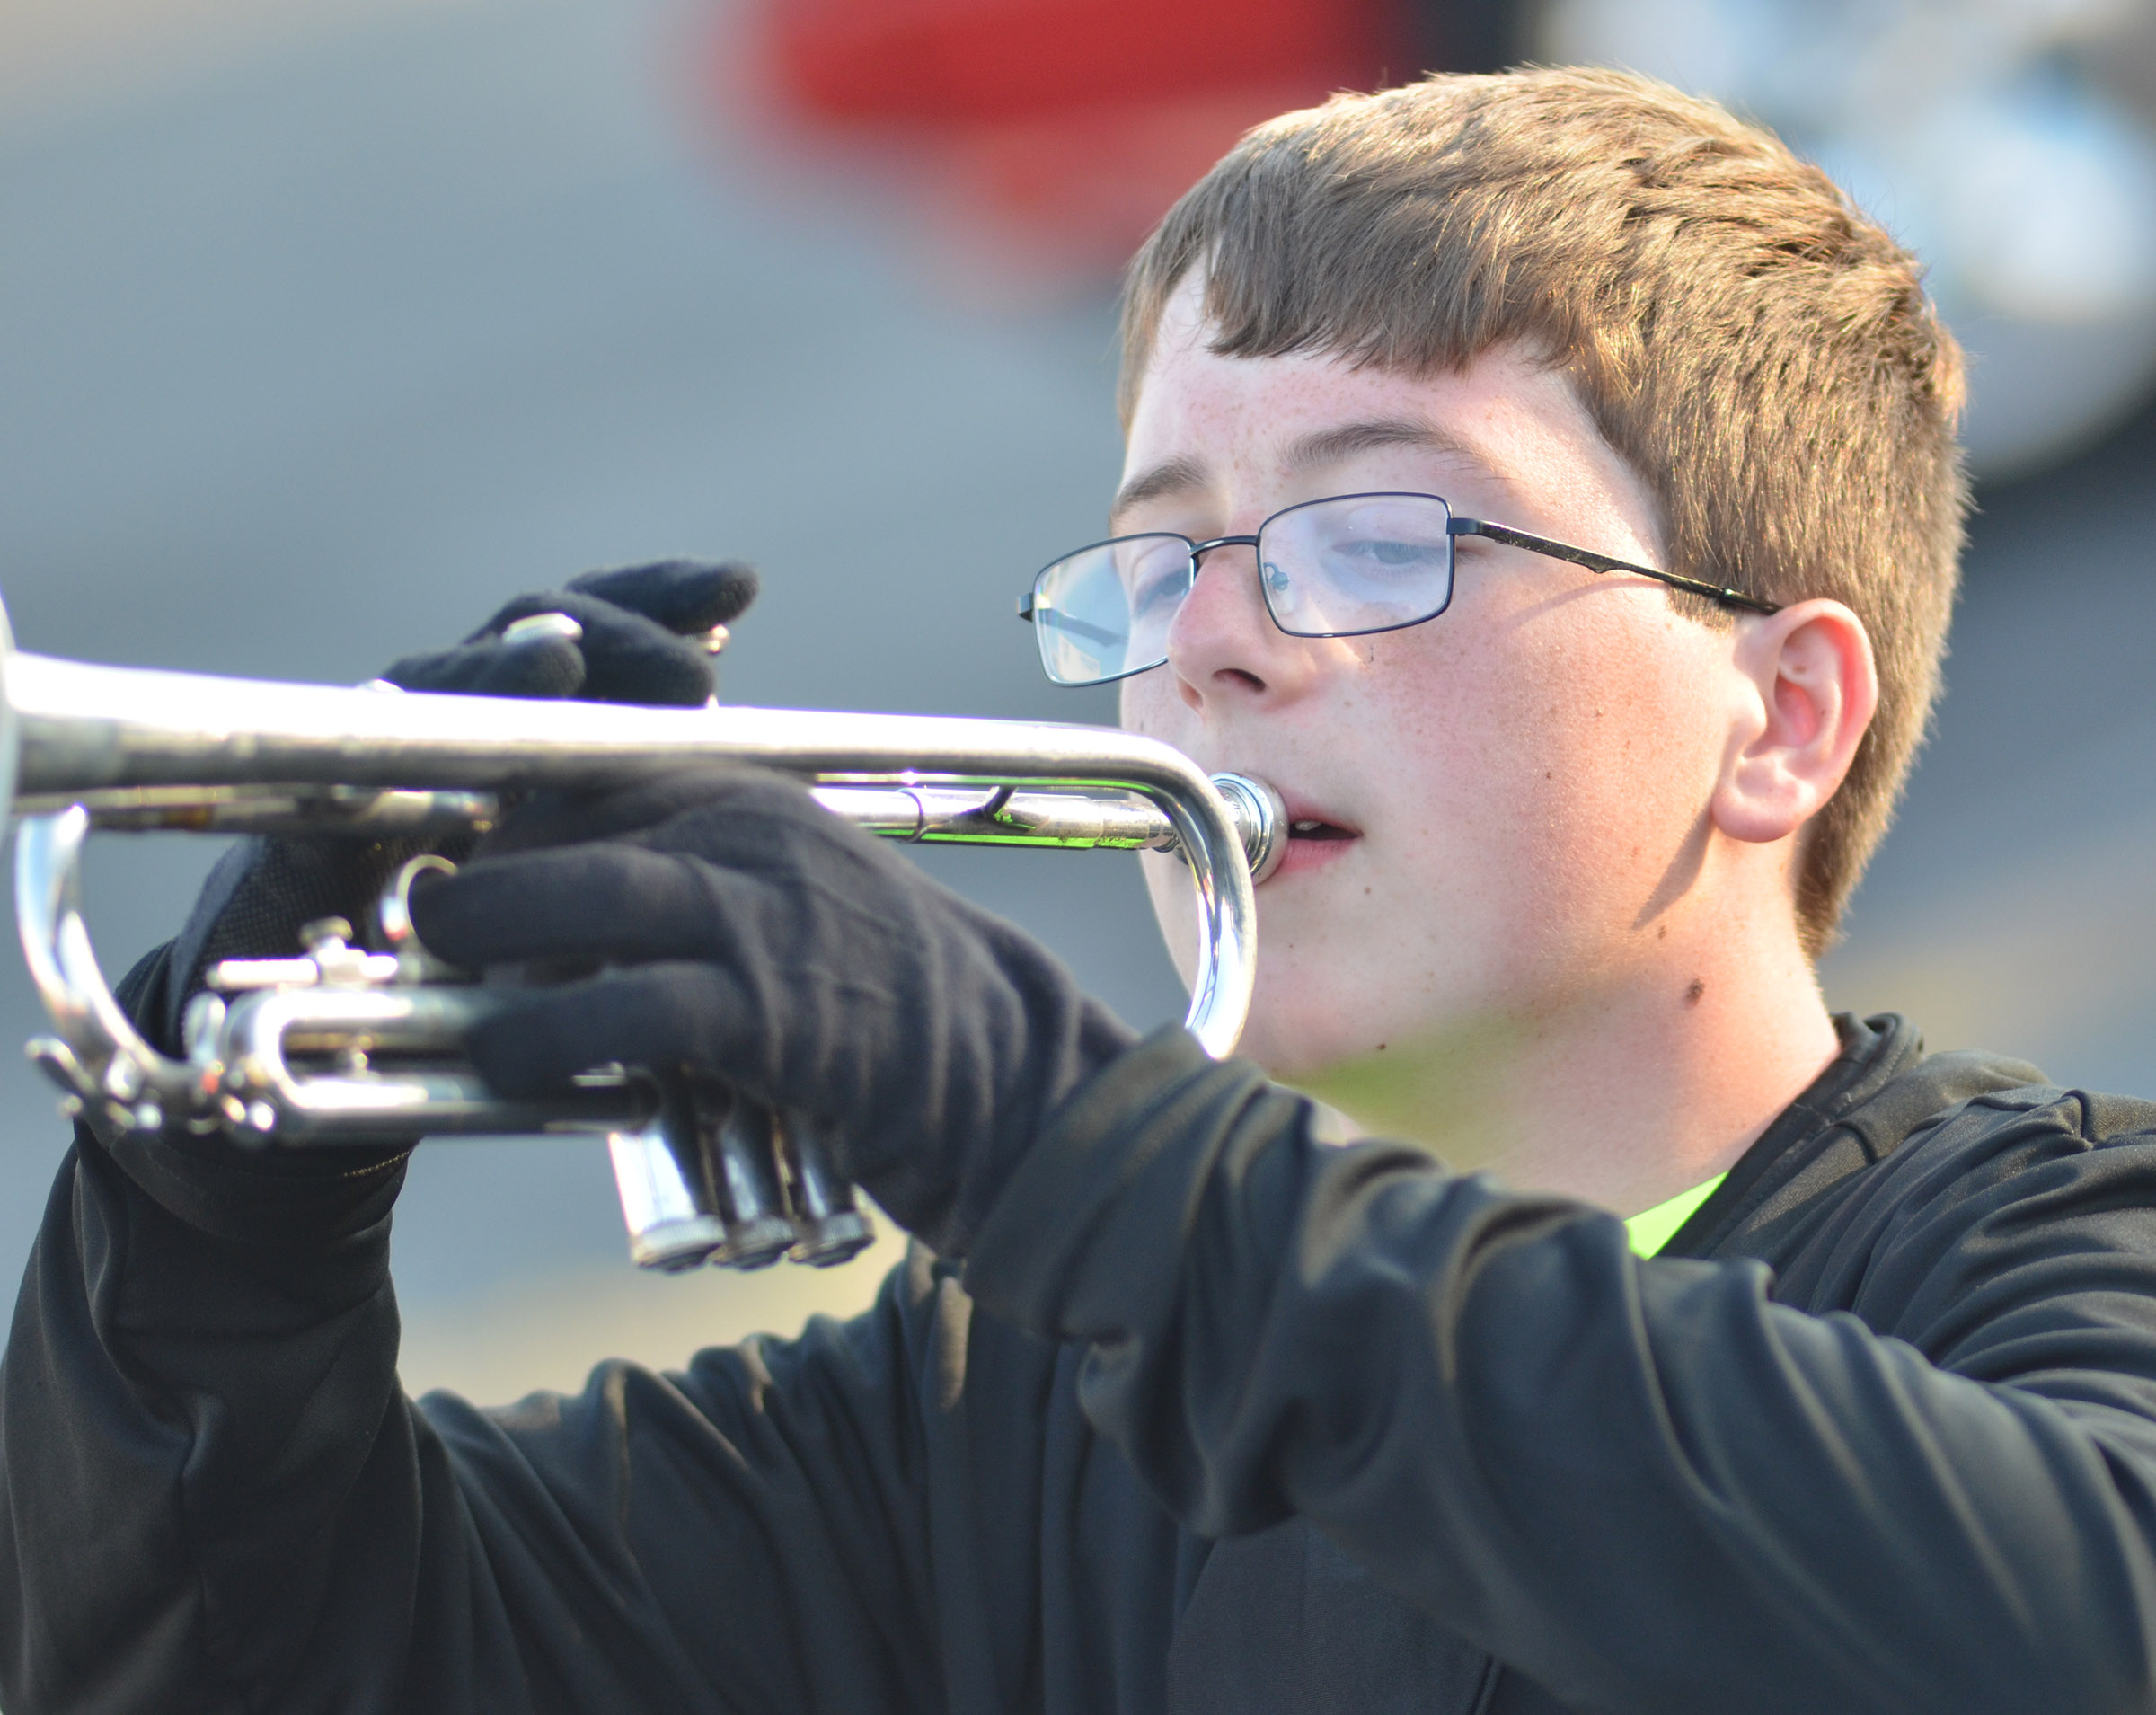 CHS sophomore Gavin Ford plays trumpet.